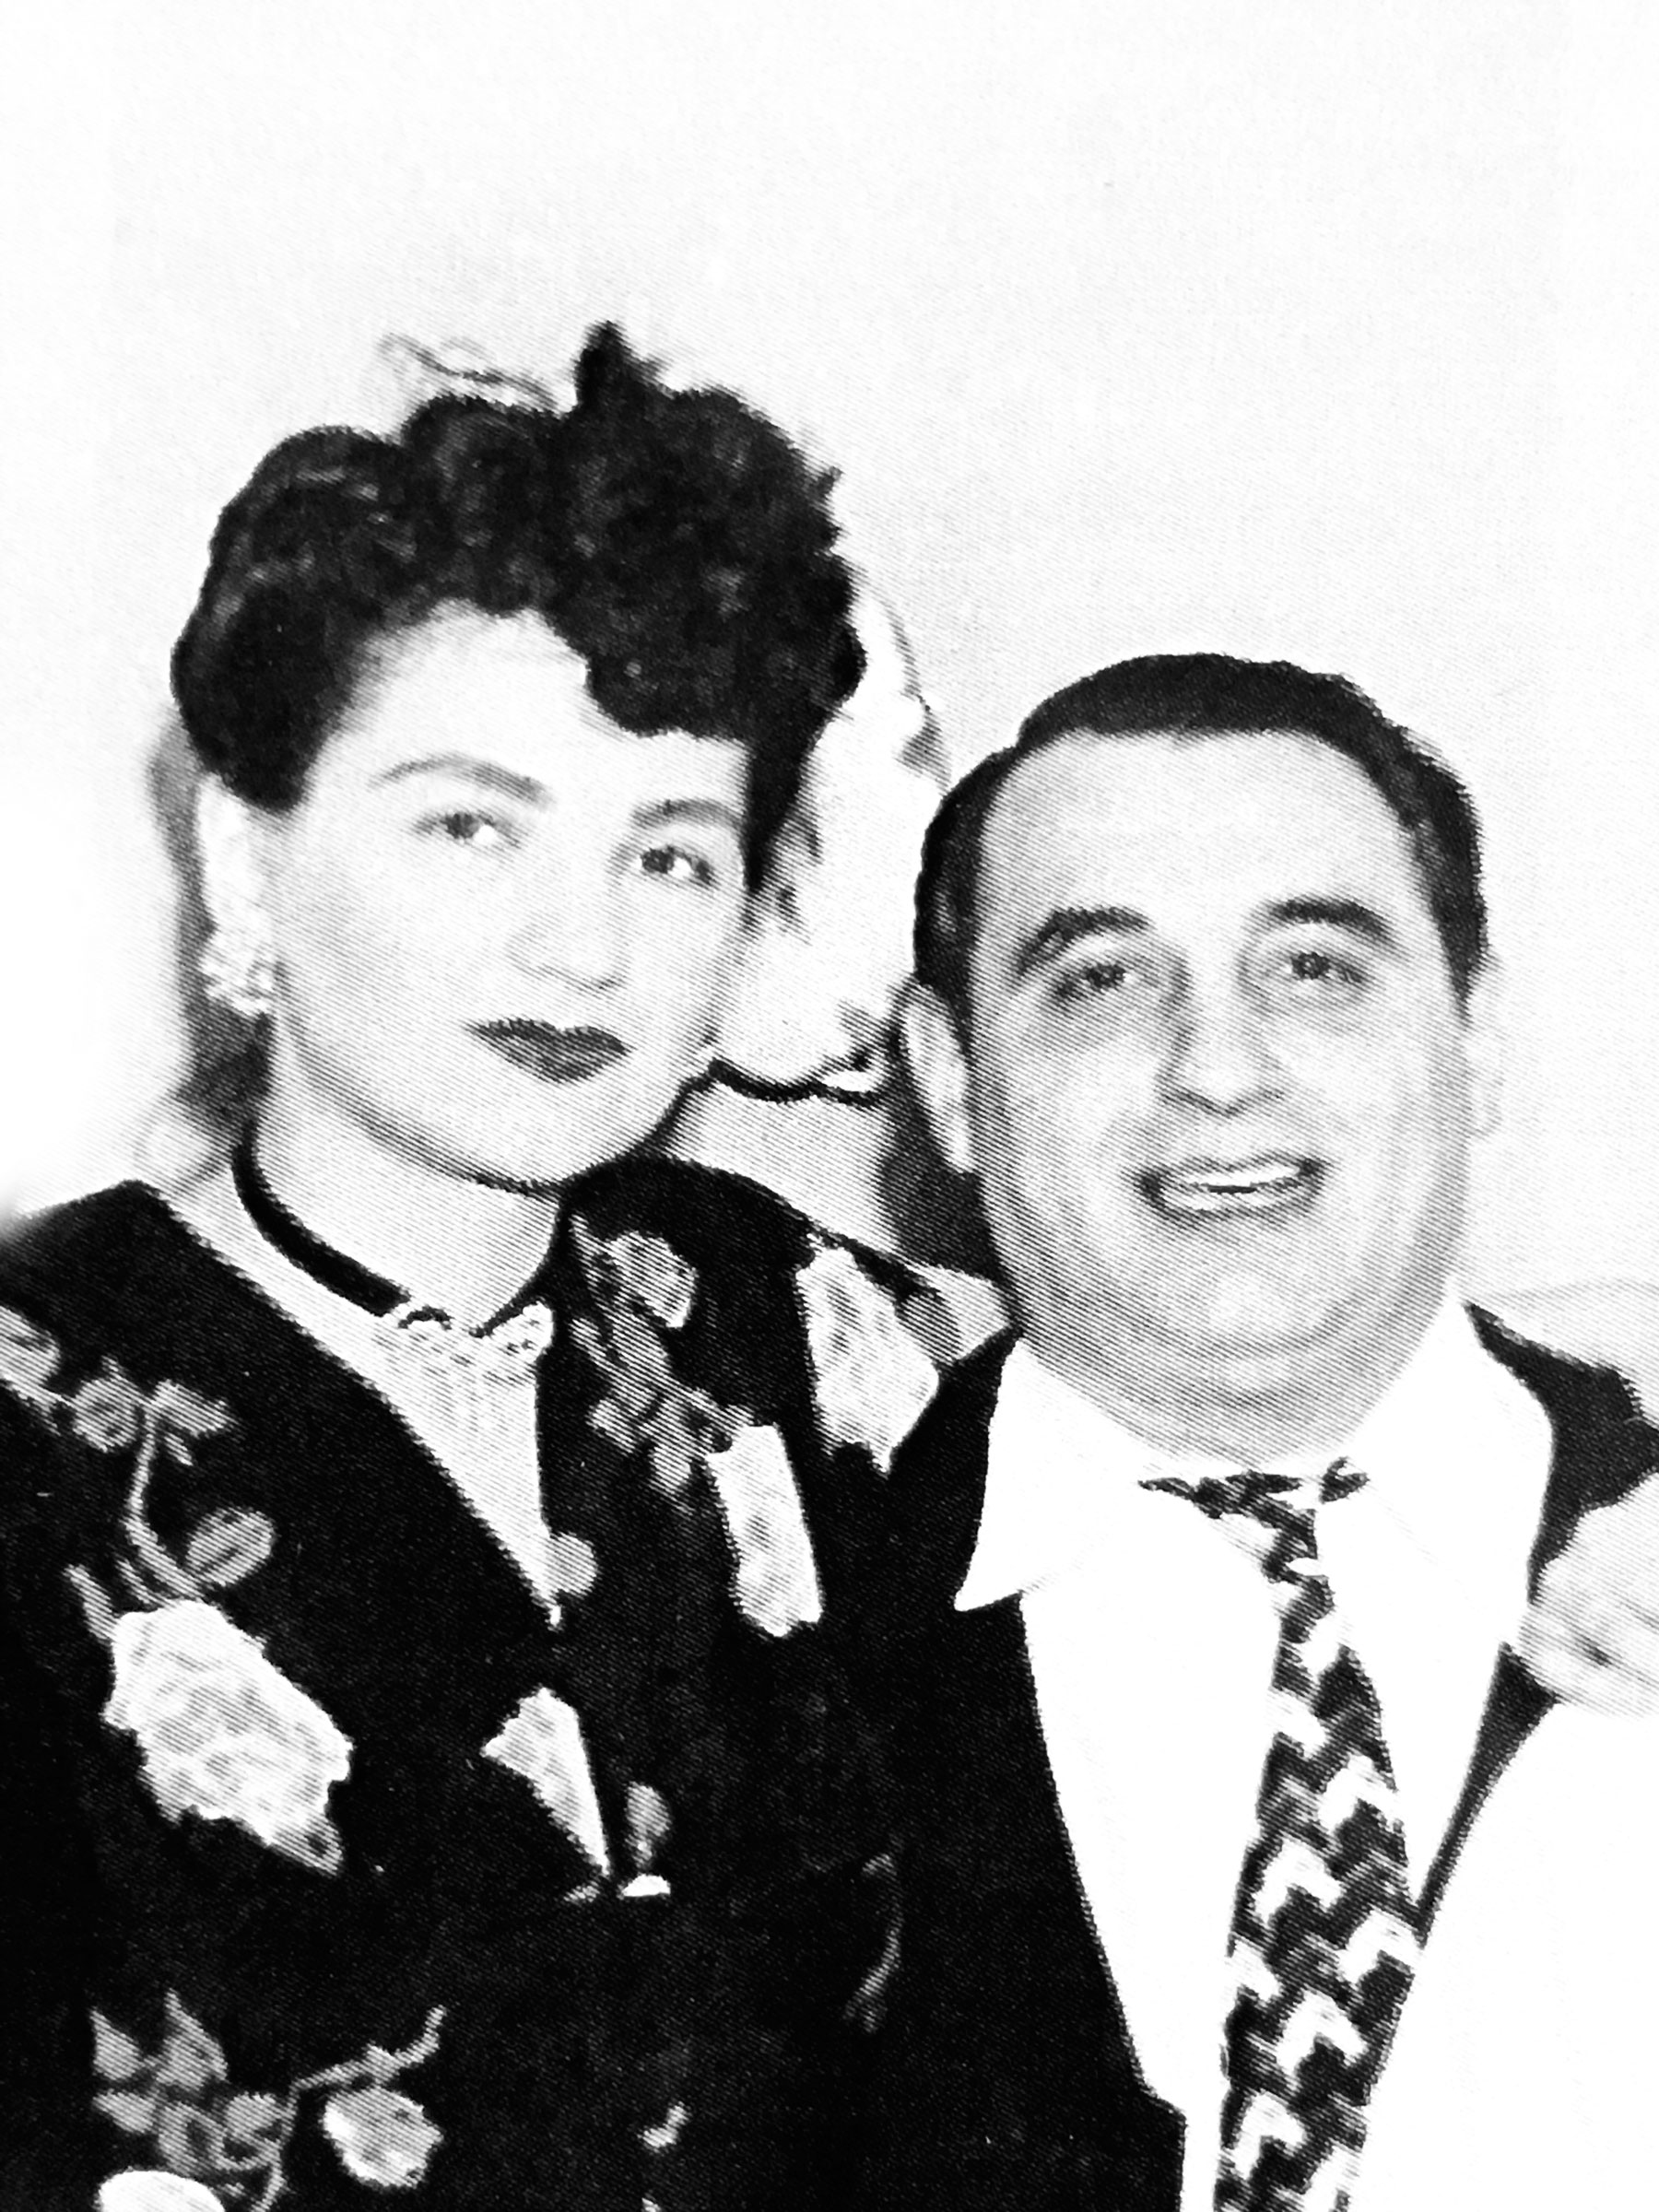 Sue Granata Ross and husband Paul C. Ross in the late 1940s.